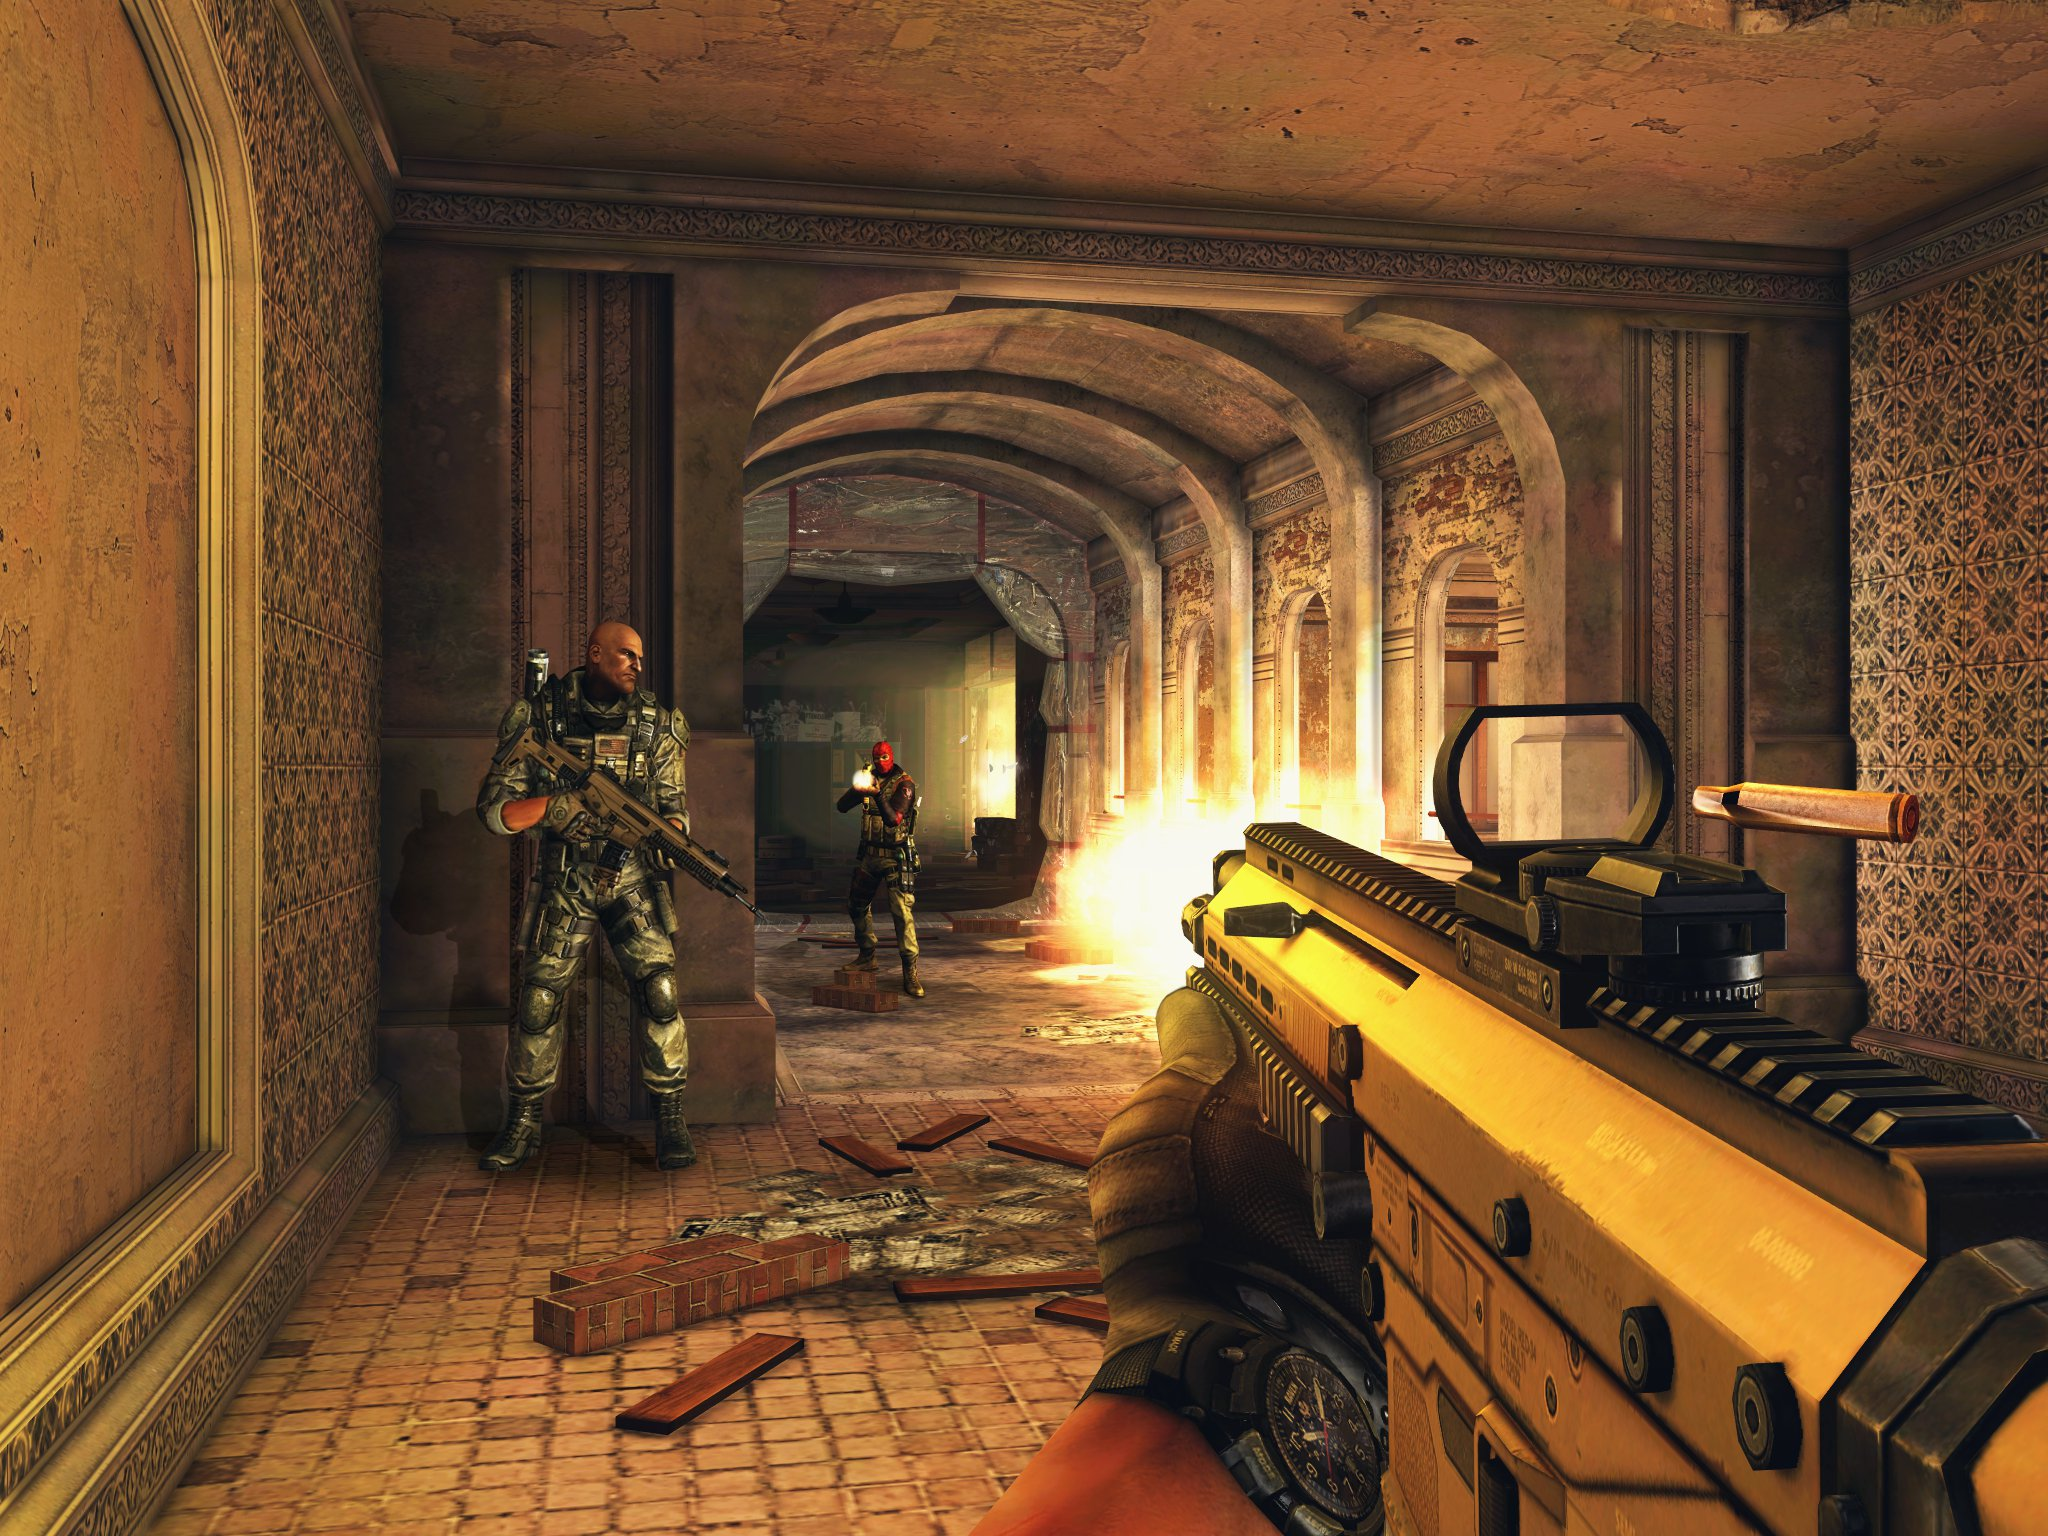 Gameloft calls Modern Combat 5's single player a 'turning point' for the series